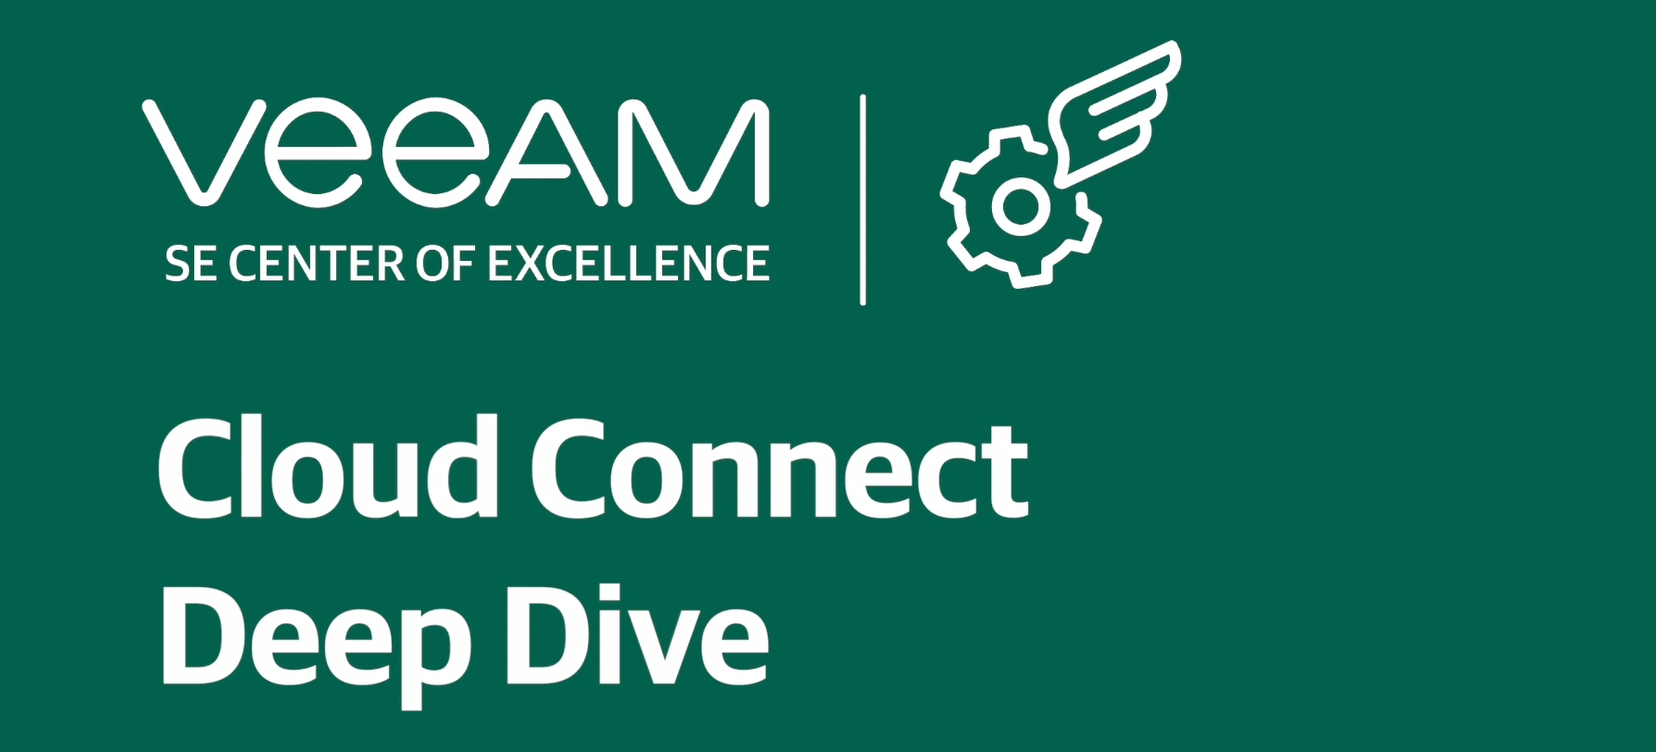 Deep dive into Veeam Cloud Connect